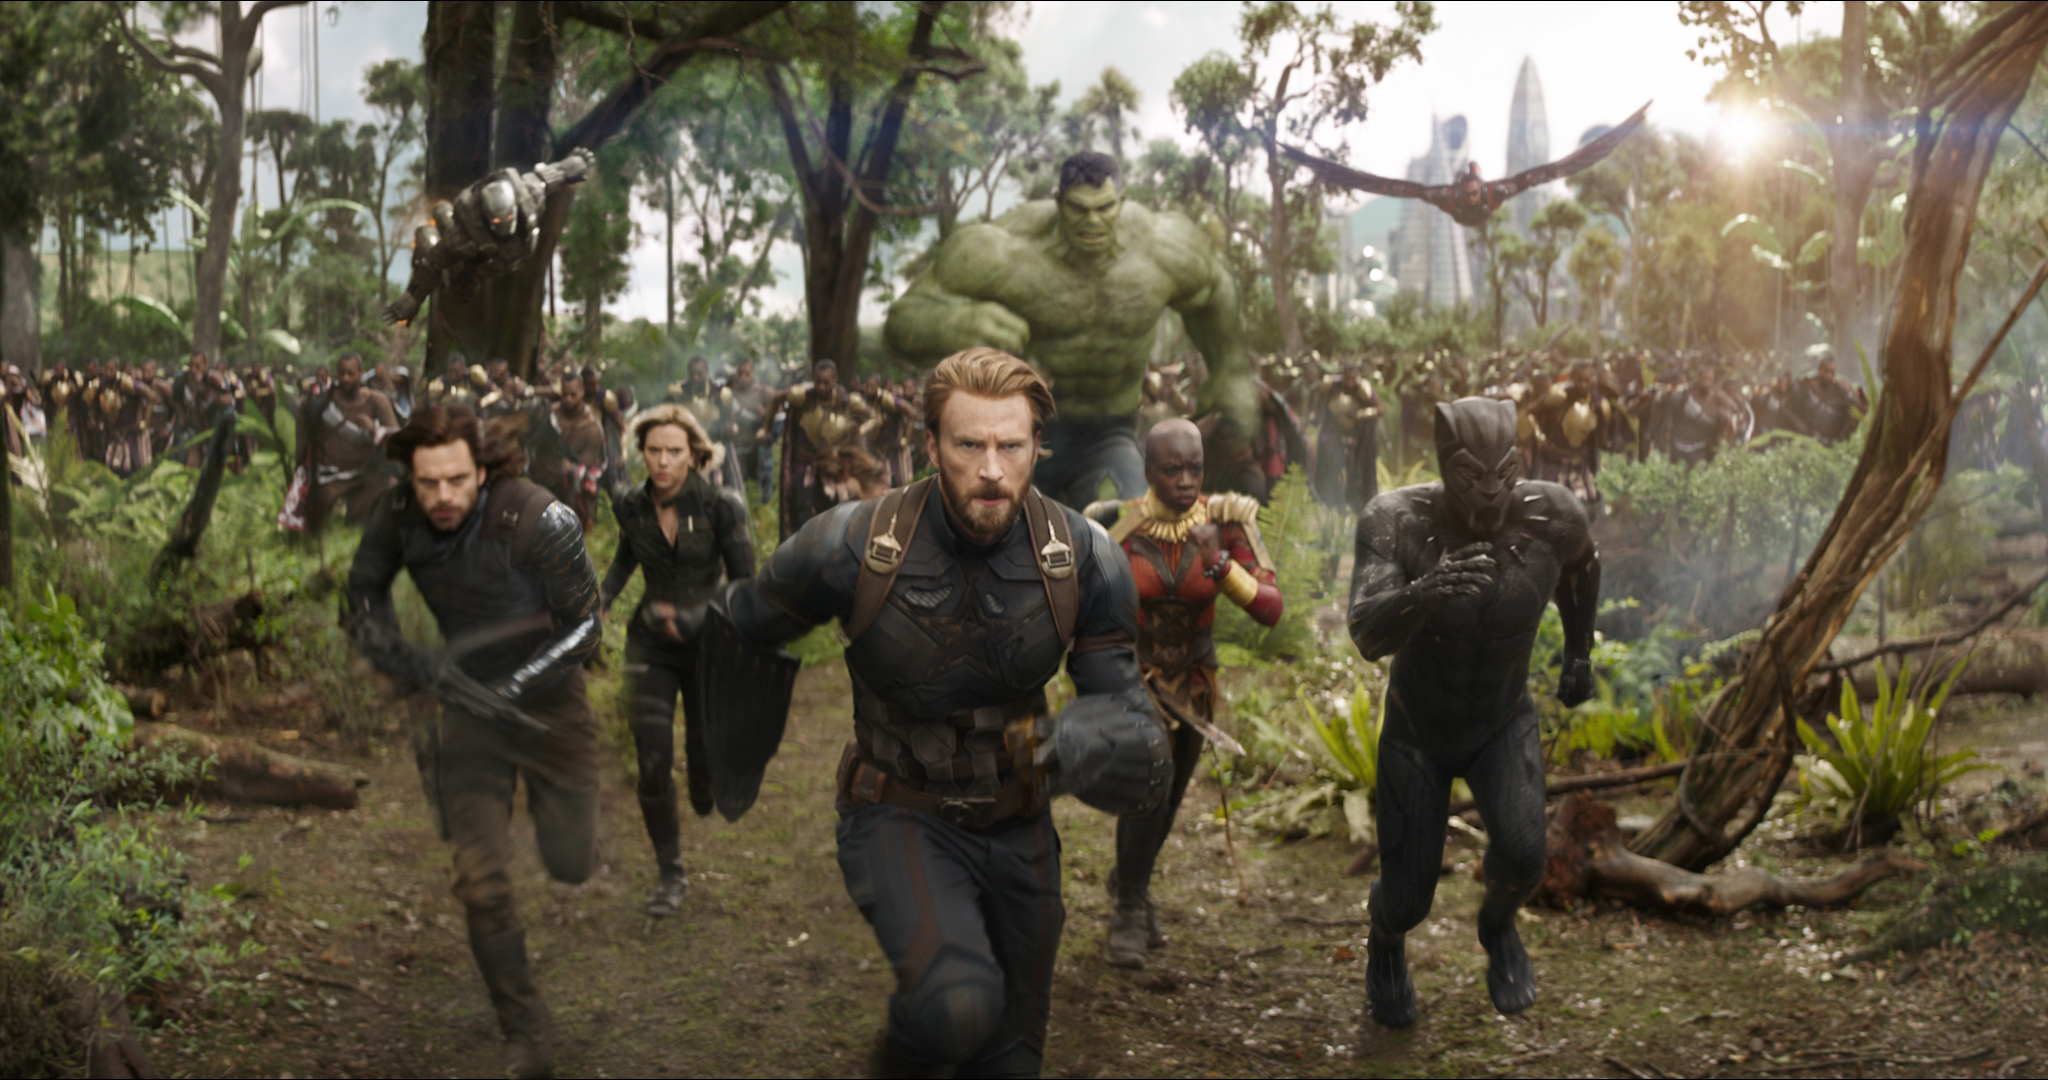 9 questions about Avengers: Infinity War you were too embarrassed to ask